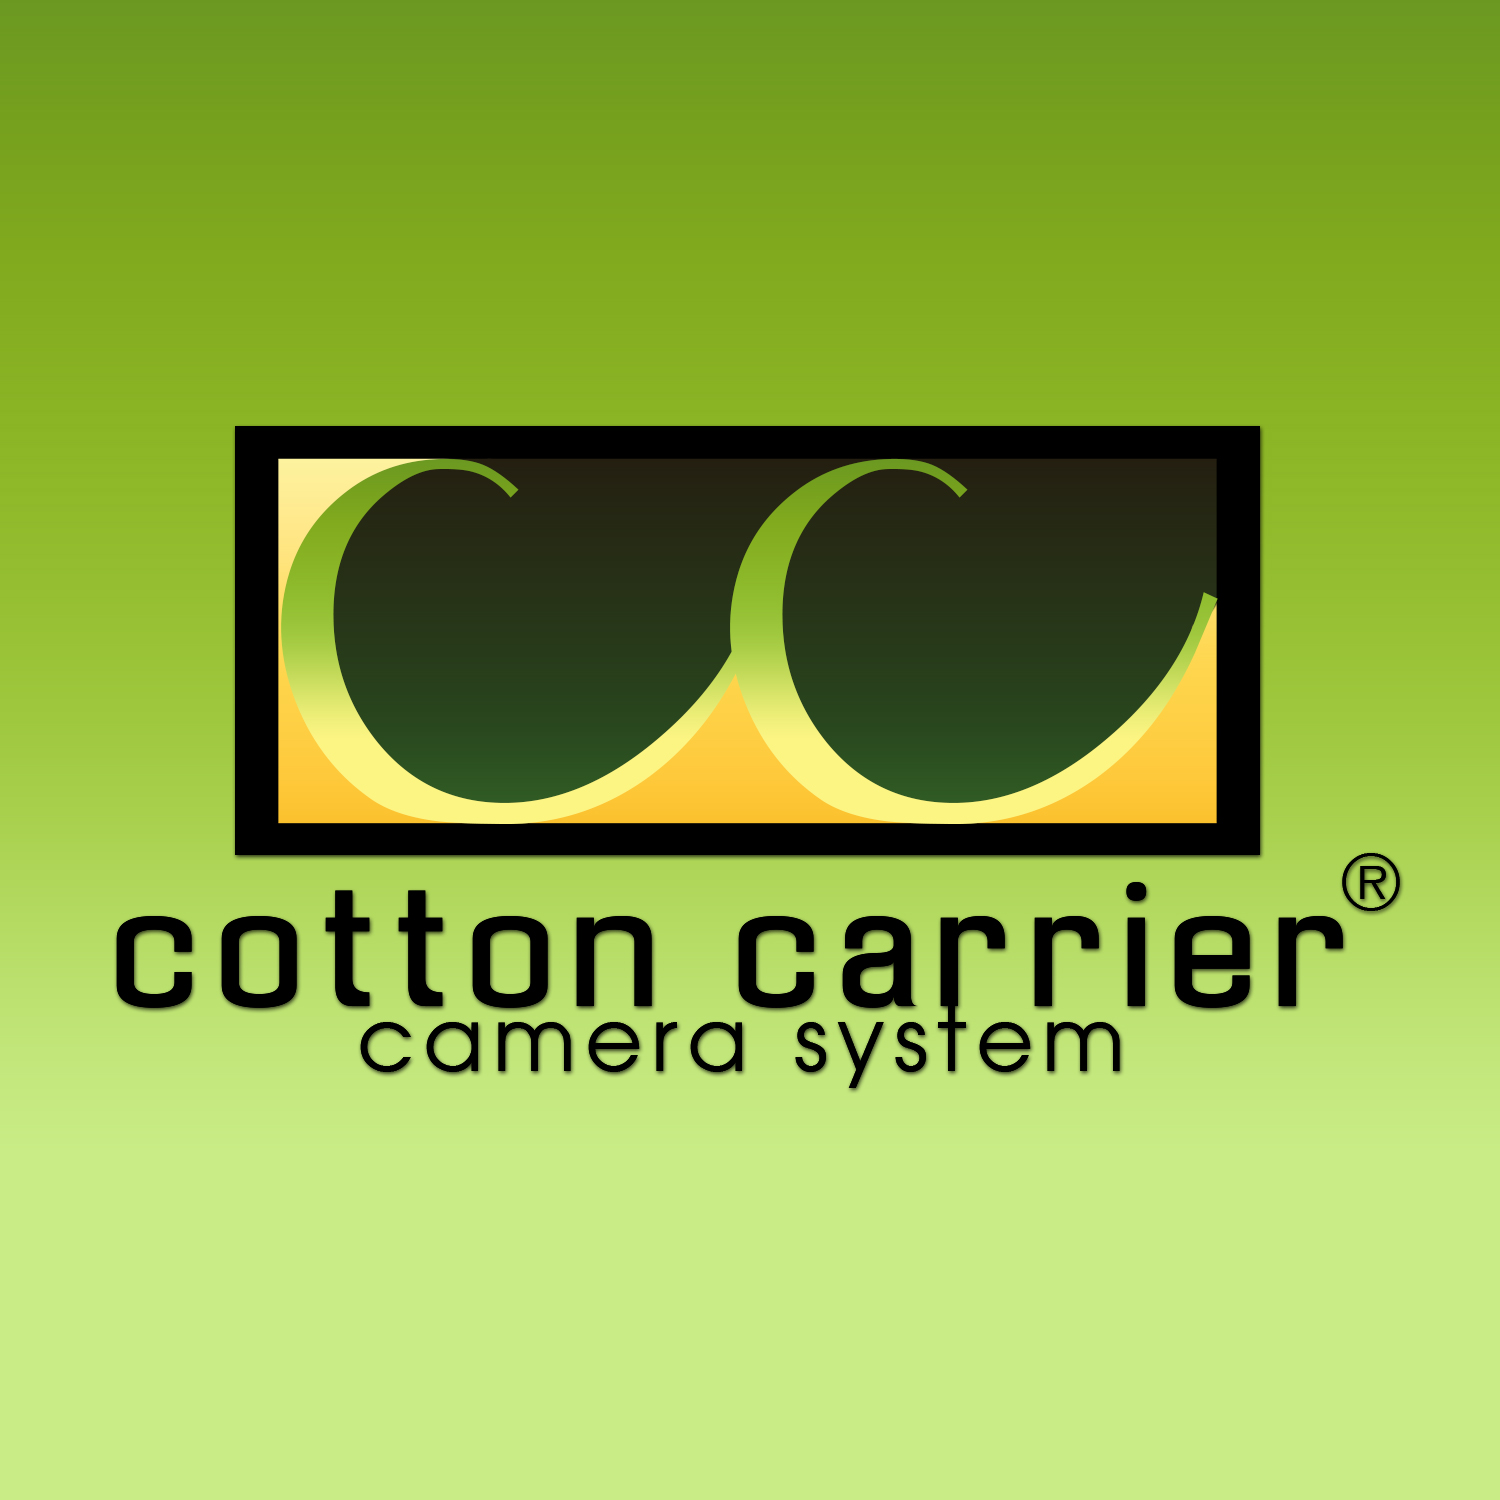 Logo Design by Kivi Marc Sarmiento - Entry No. 44 in the Logo Design Contest Cotton Carrier Camera Systems Logo Design.